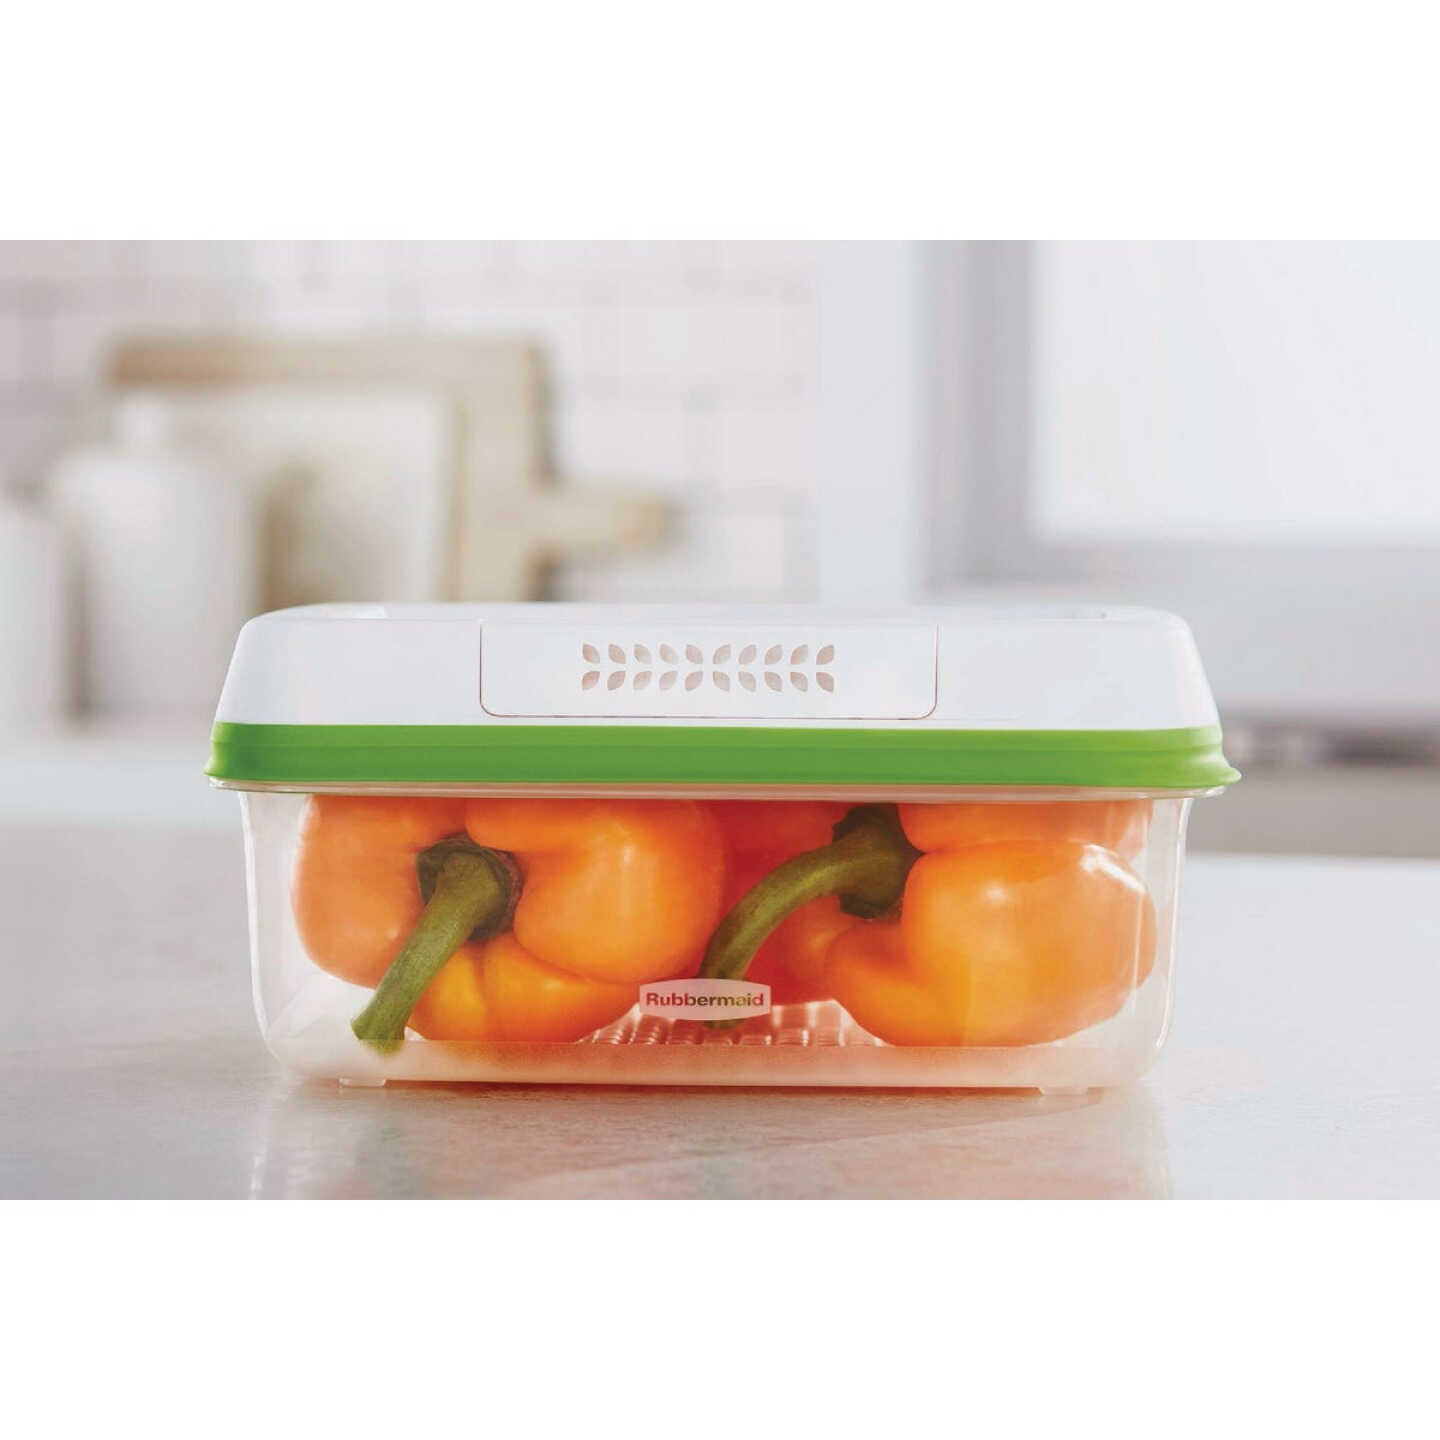 Rubbermaid Freshworks Produce Saver 11.3 C. Rectangle Produce Container Image 2